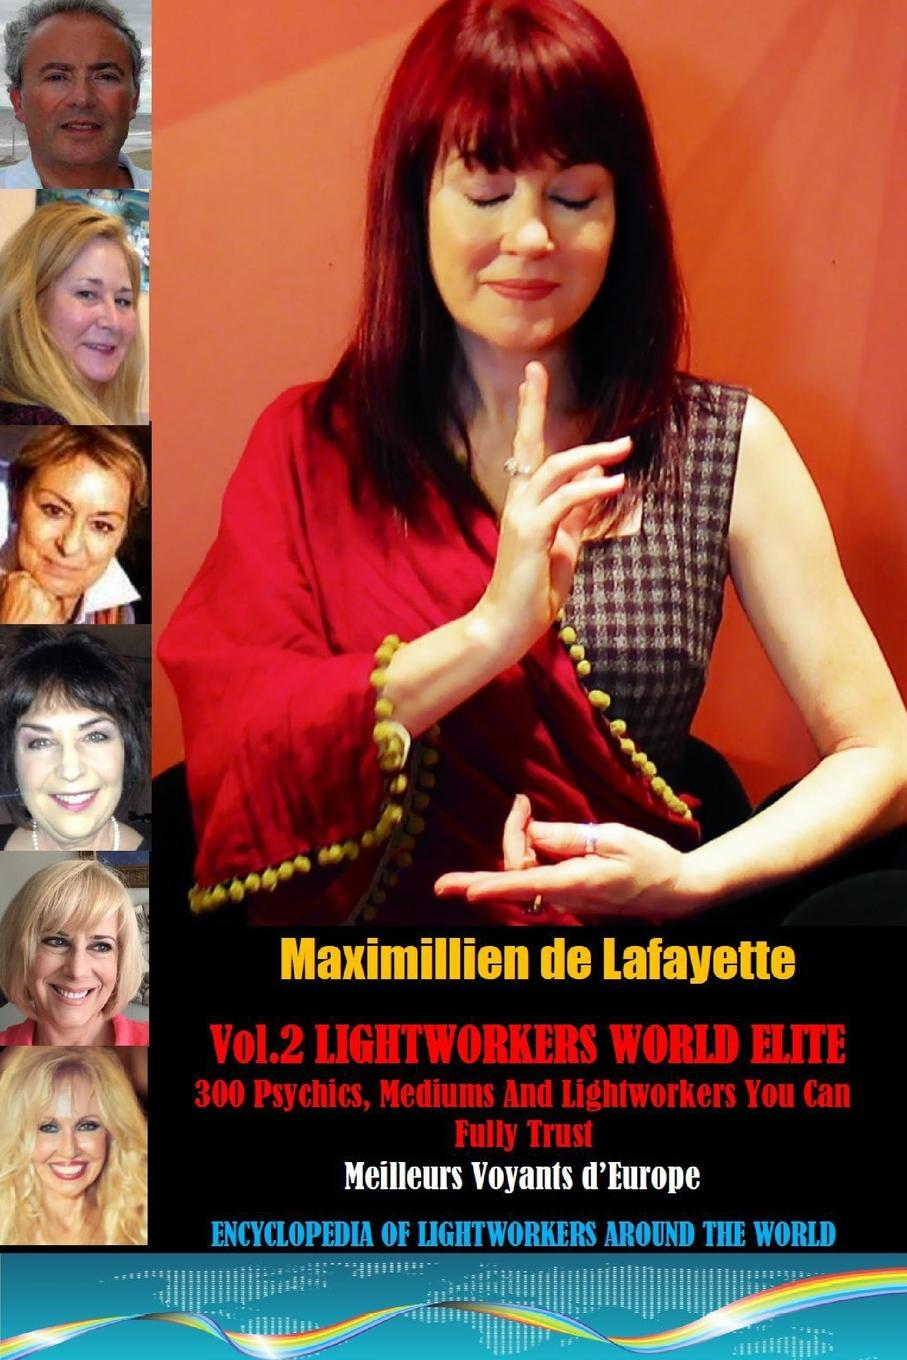 Maximillien De Lafayette Vol. 2. LIGHTWORKERS WORLD ELITE: 300 Psychics, Mediums and Lightworkers You Can Fully Trust avengers world vol 4